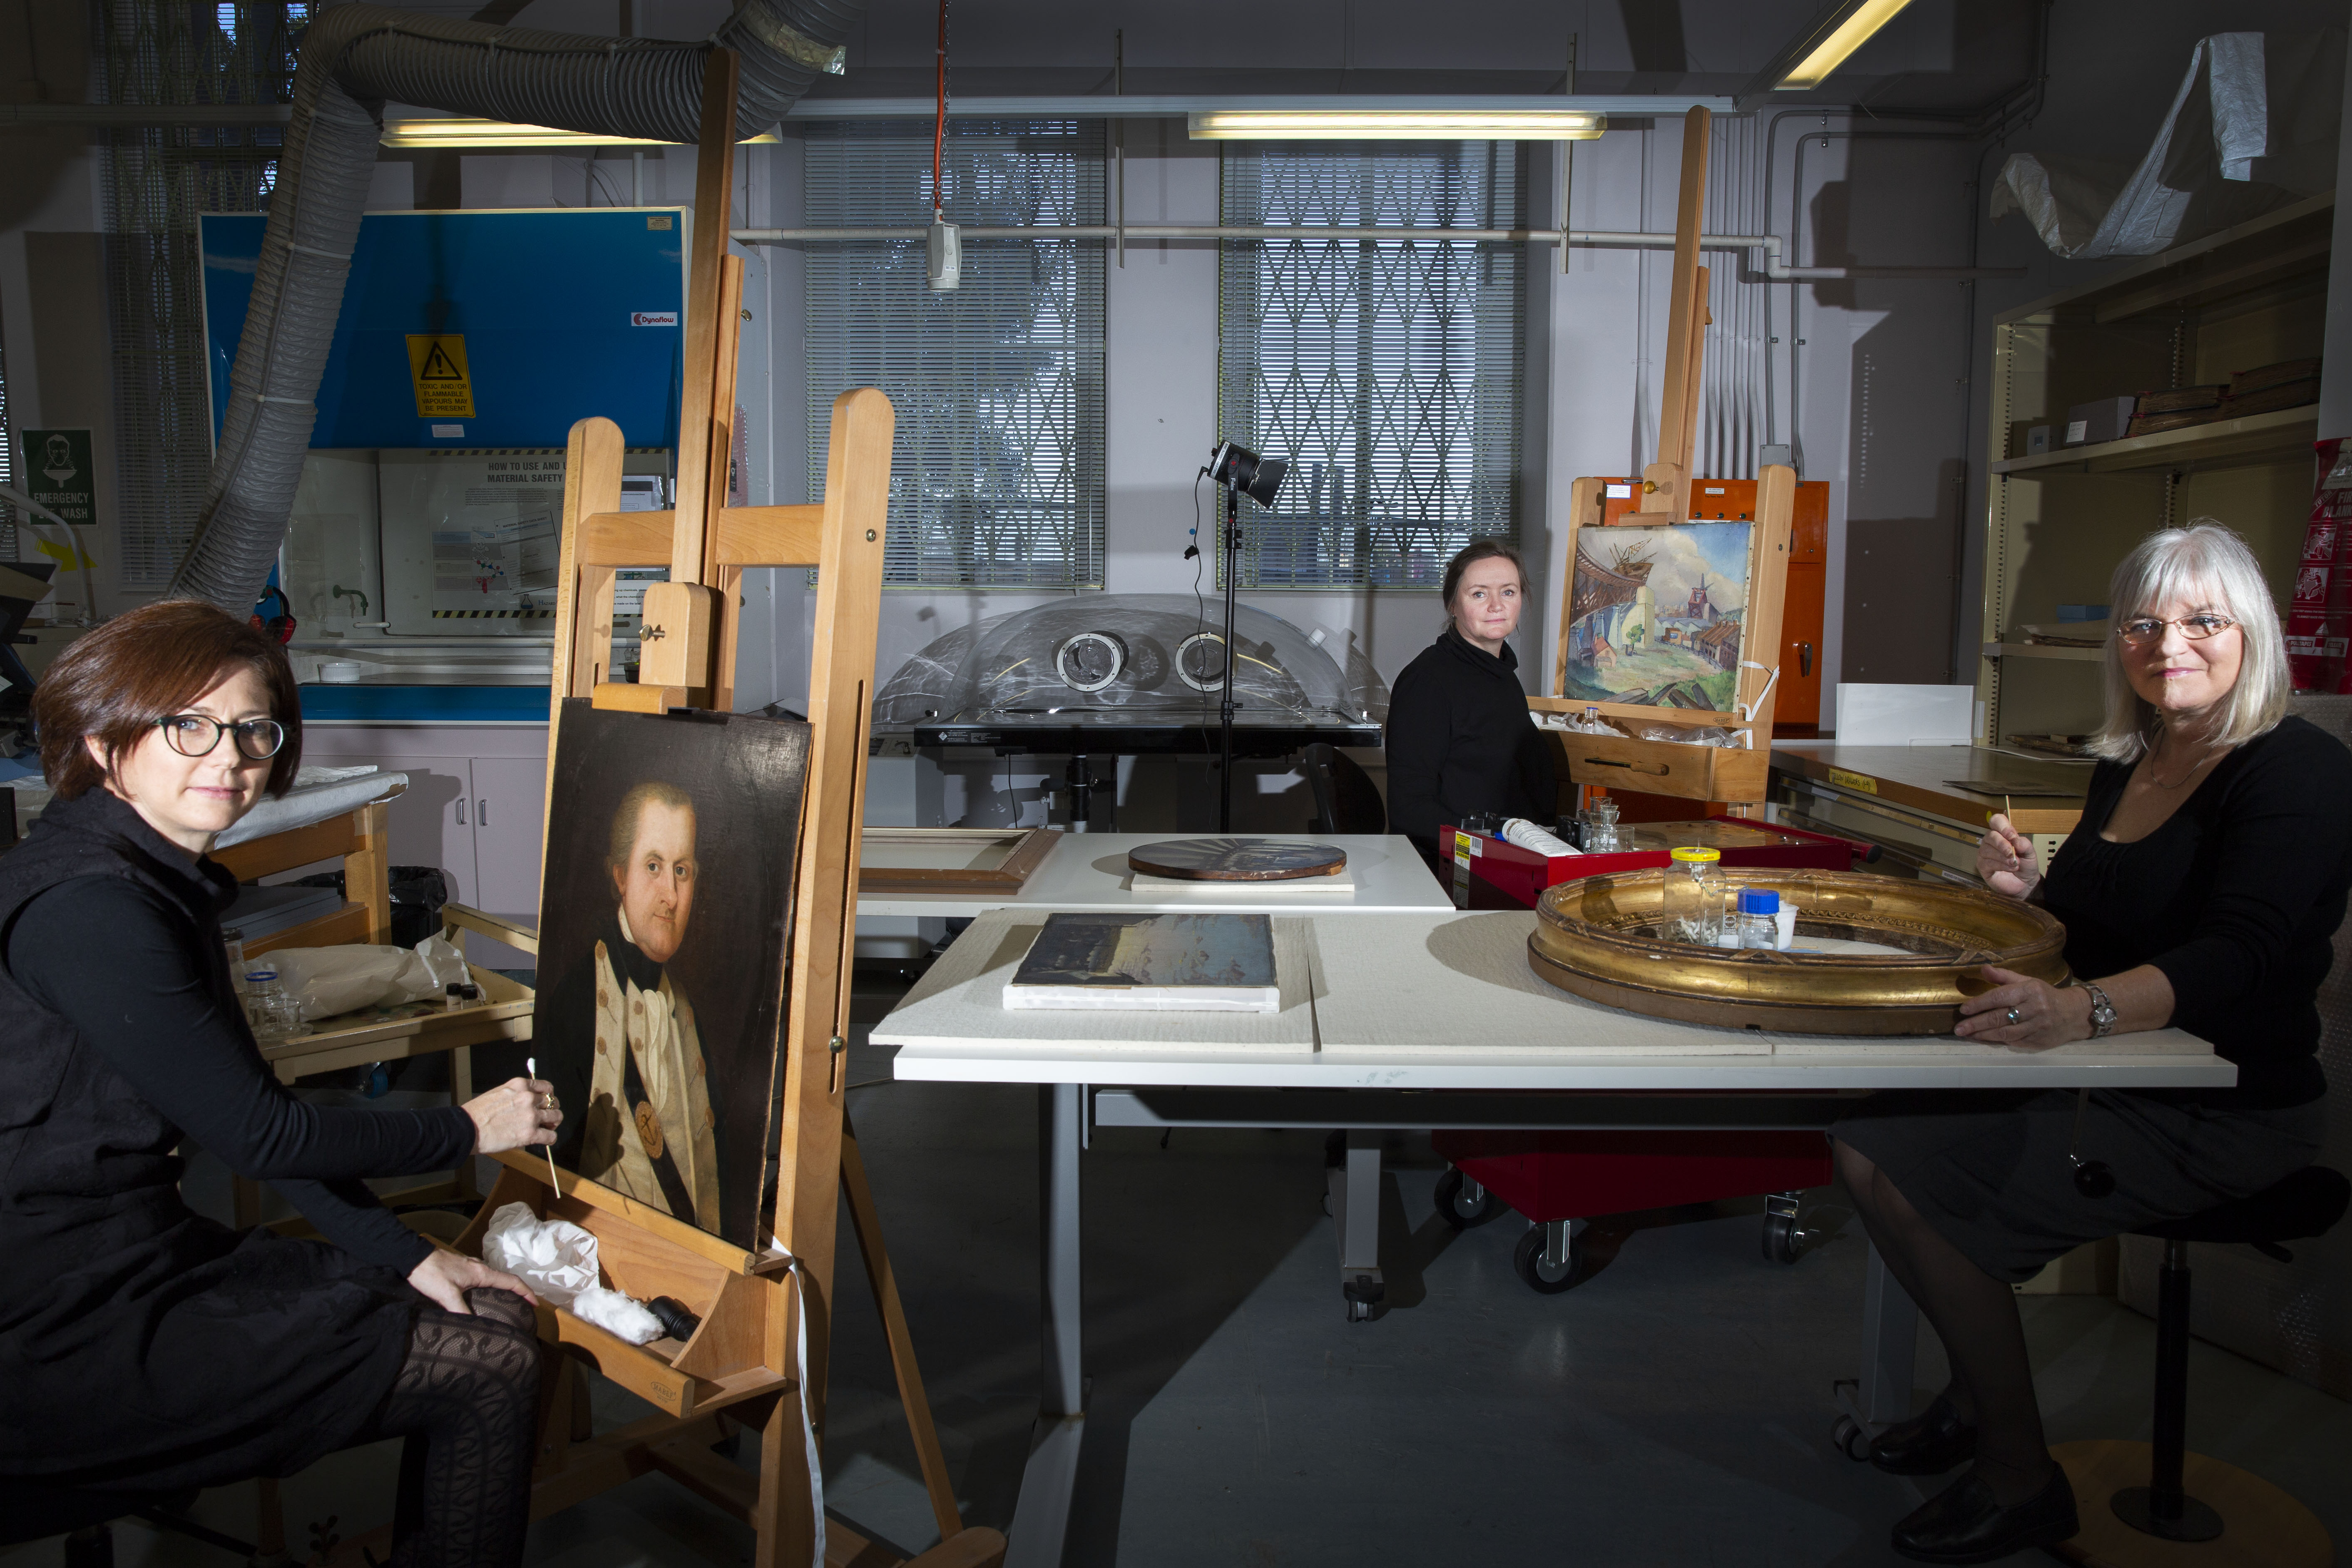 Conservators Andrea Nottage, Michelle Wassall and Basia Dabrowa in the Collection Care lab, photo by Joy Lai